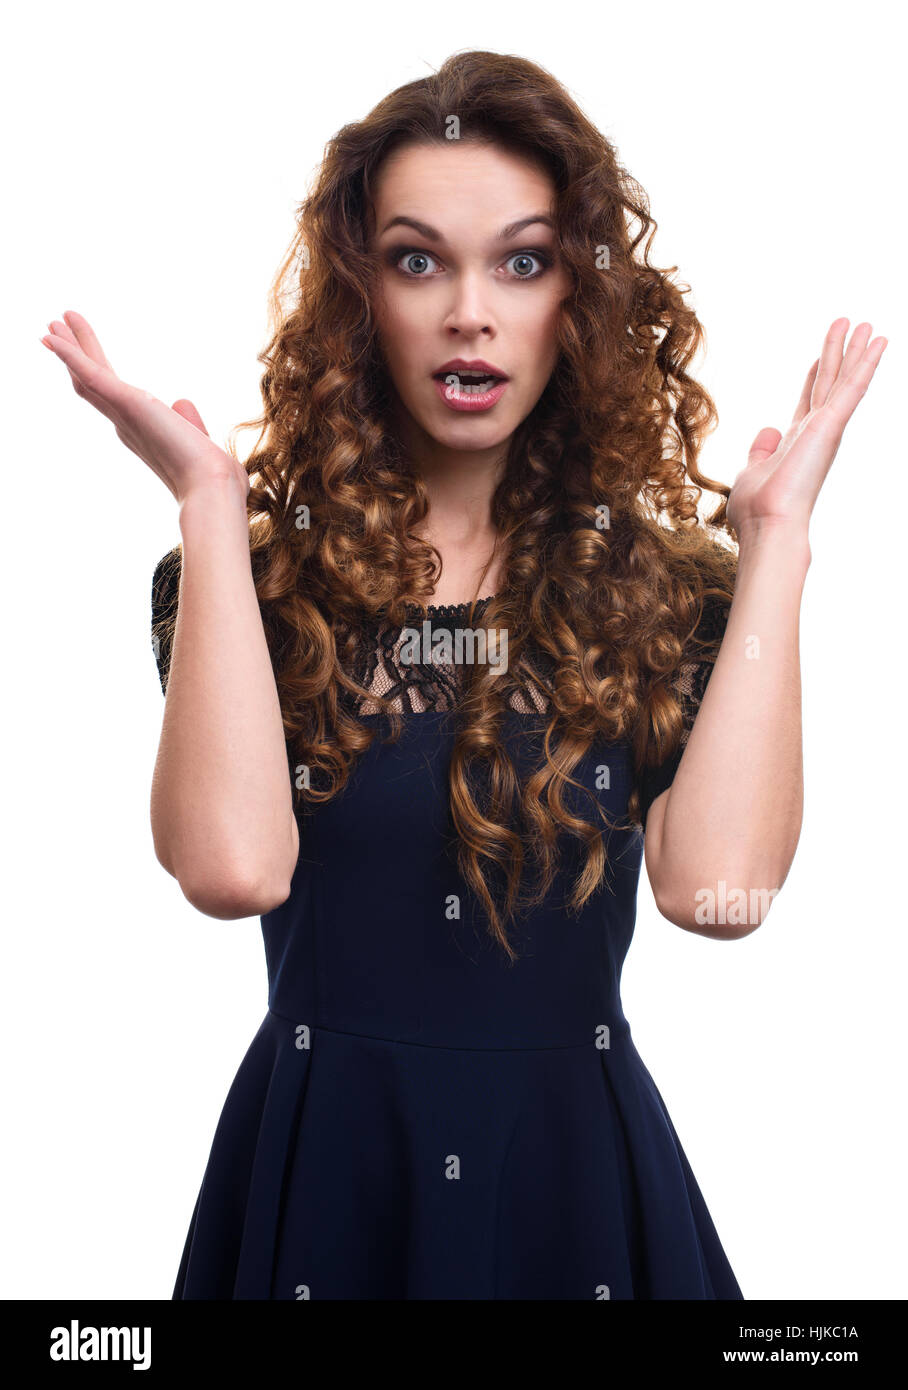 Surprised happy beautiful woman with curly hair isolated on white background Stock Photo